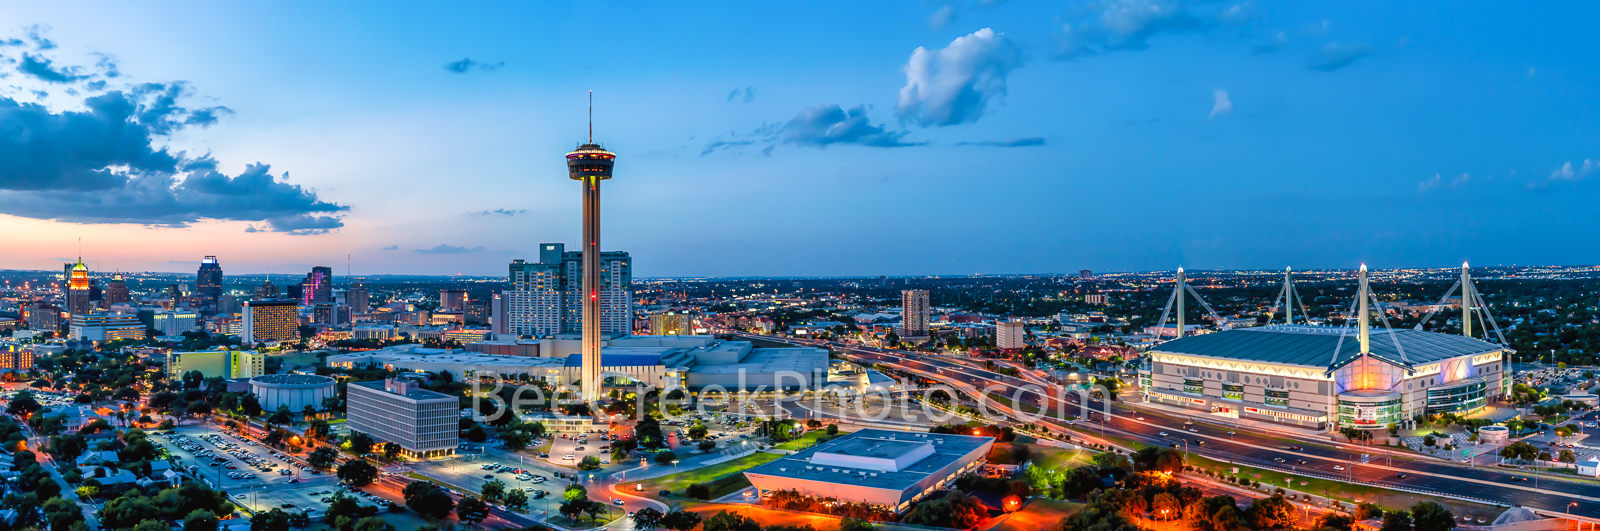 San Antonio Skyline at Twilight Pano - San Antonio skyline aerial during the magic hour or blue hour as some call it.  This was...